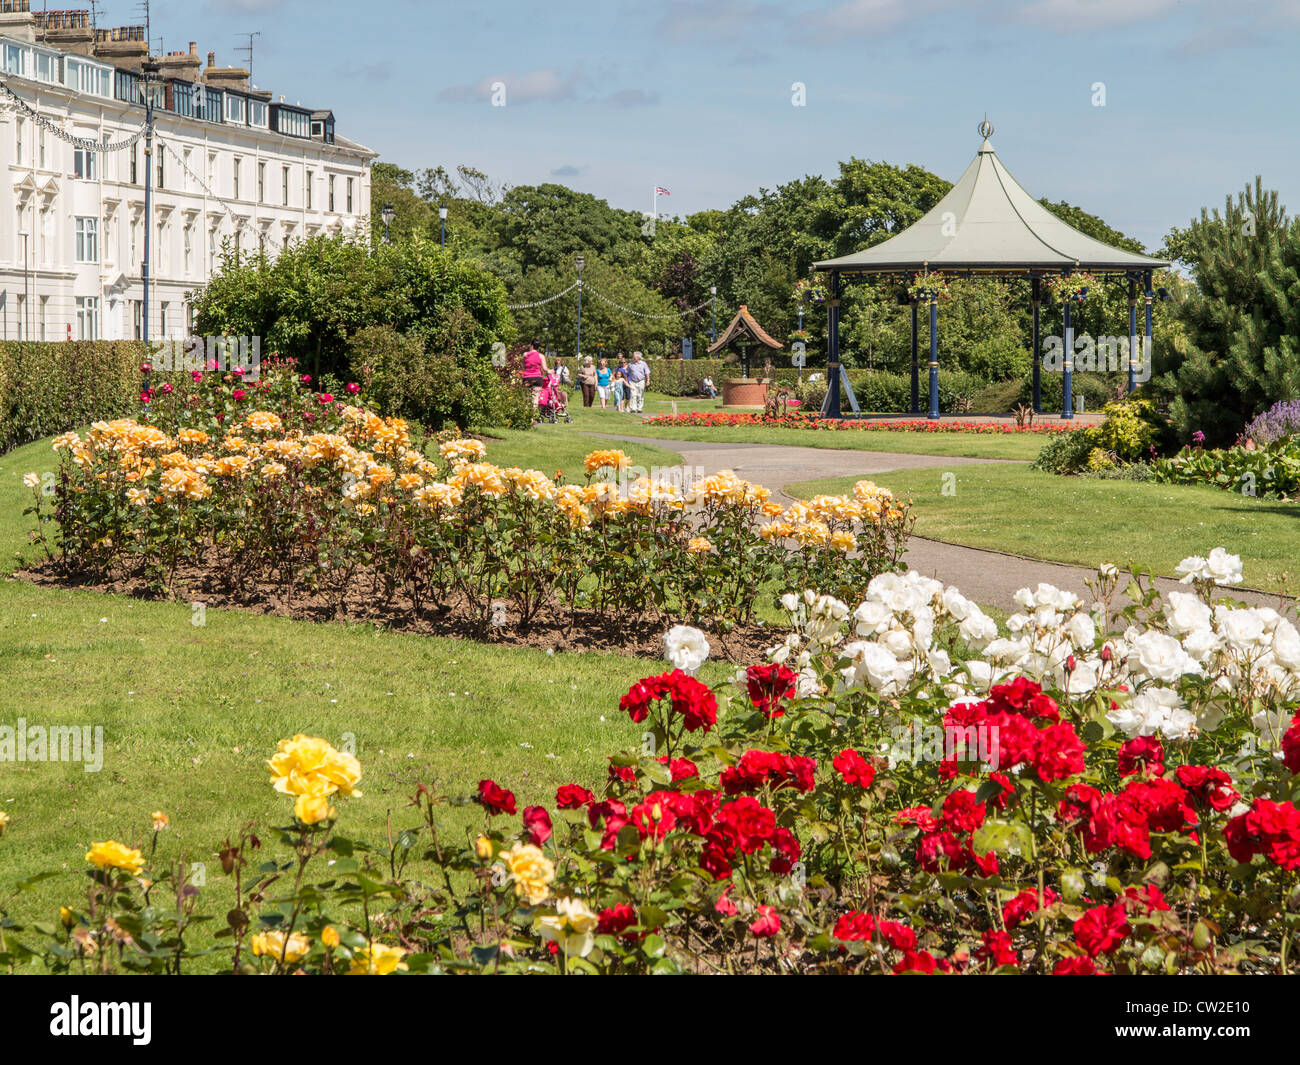 Filey North Yorkshire UK Crescent Gardens and Bandstand - Stock Image